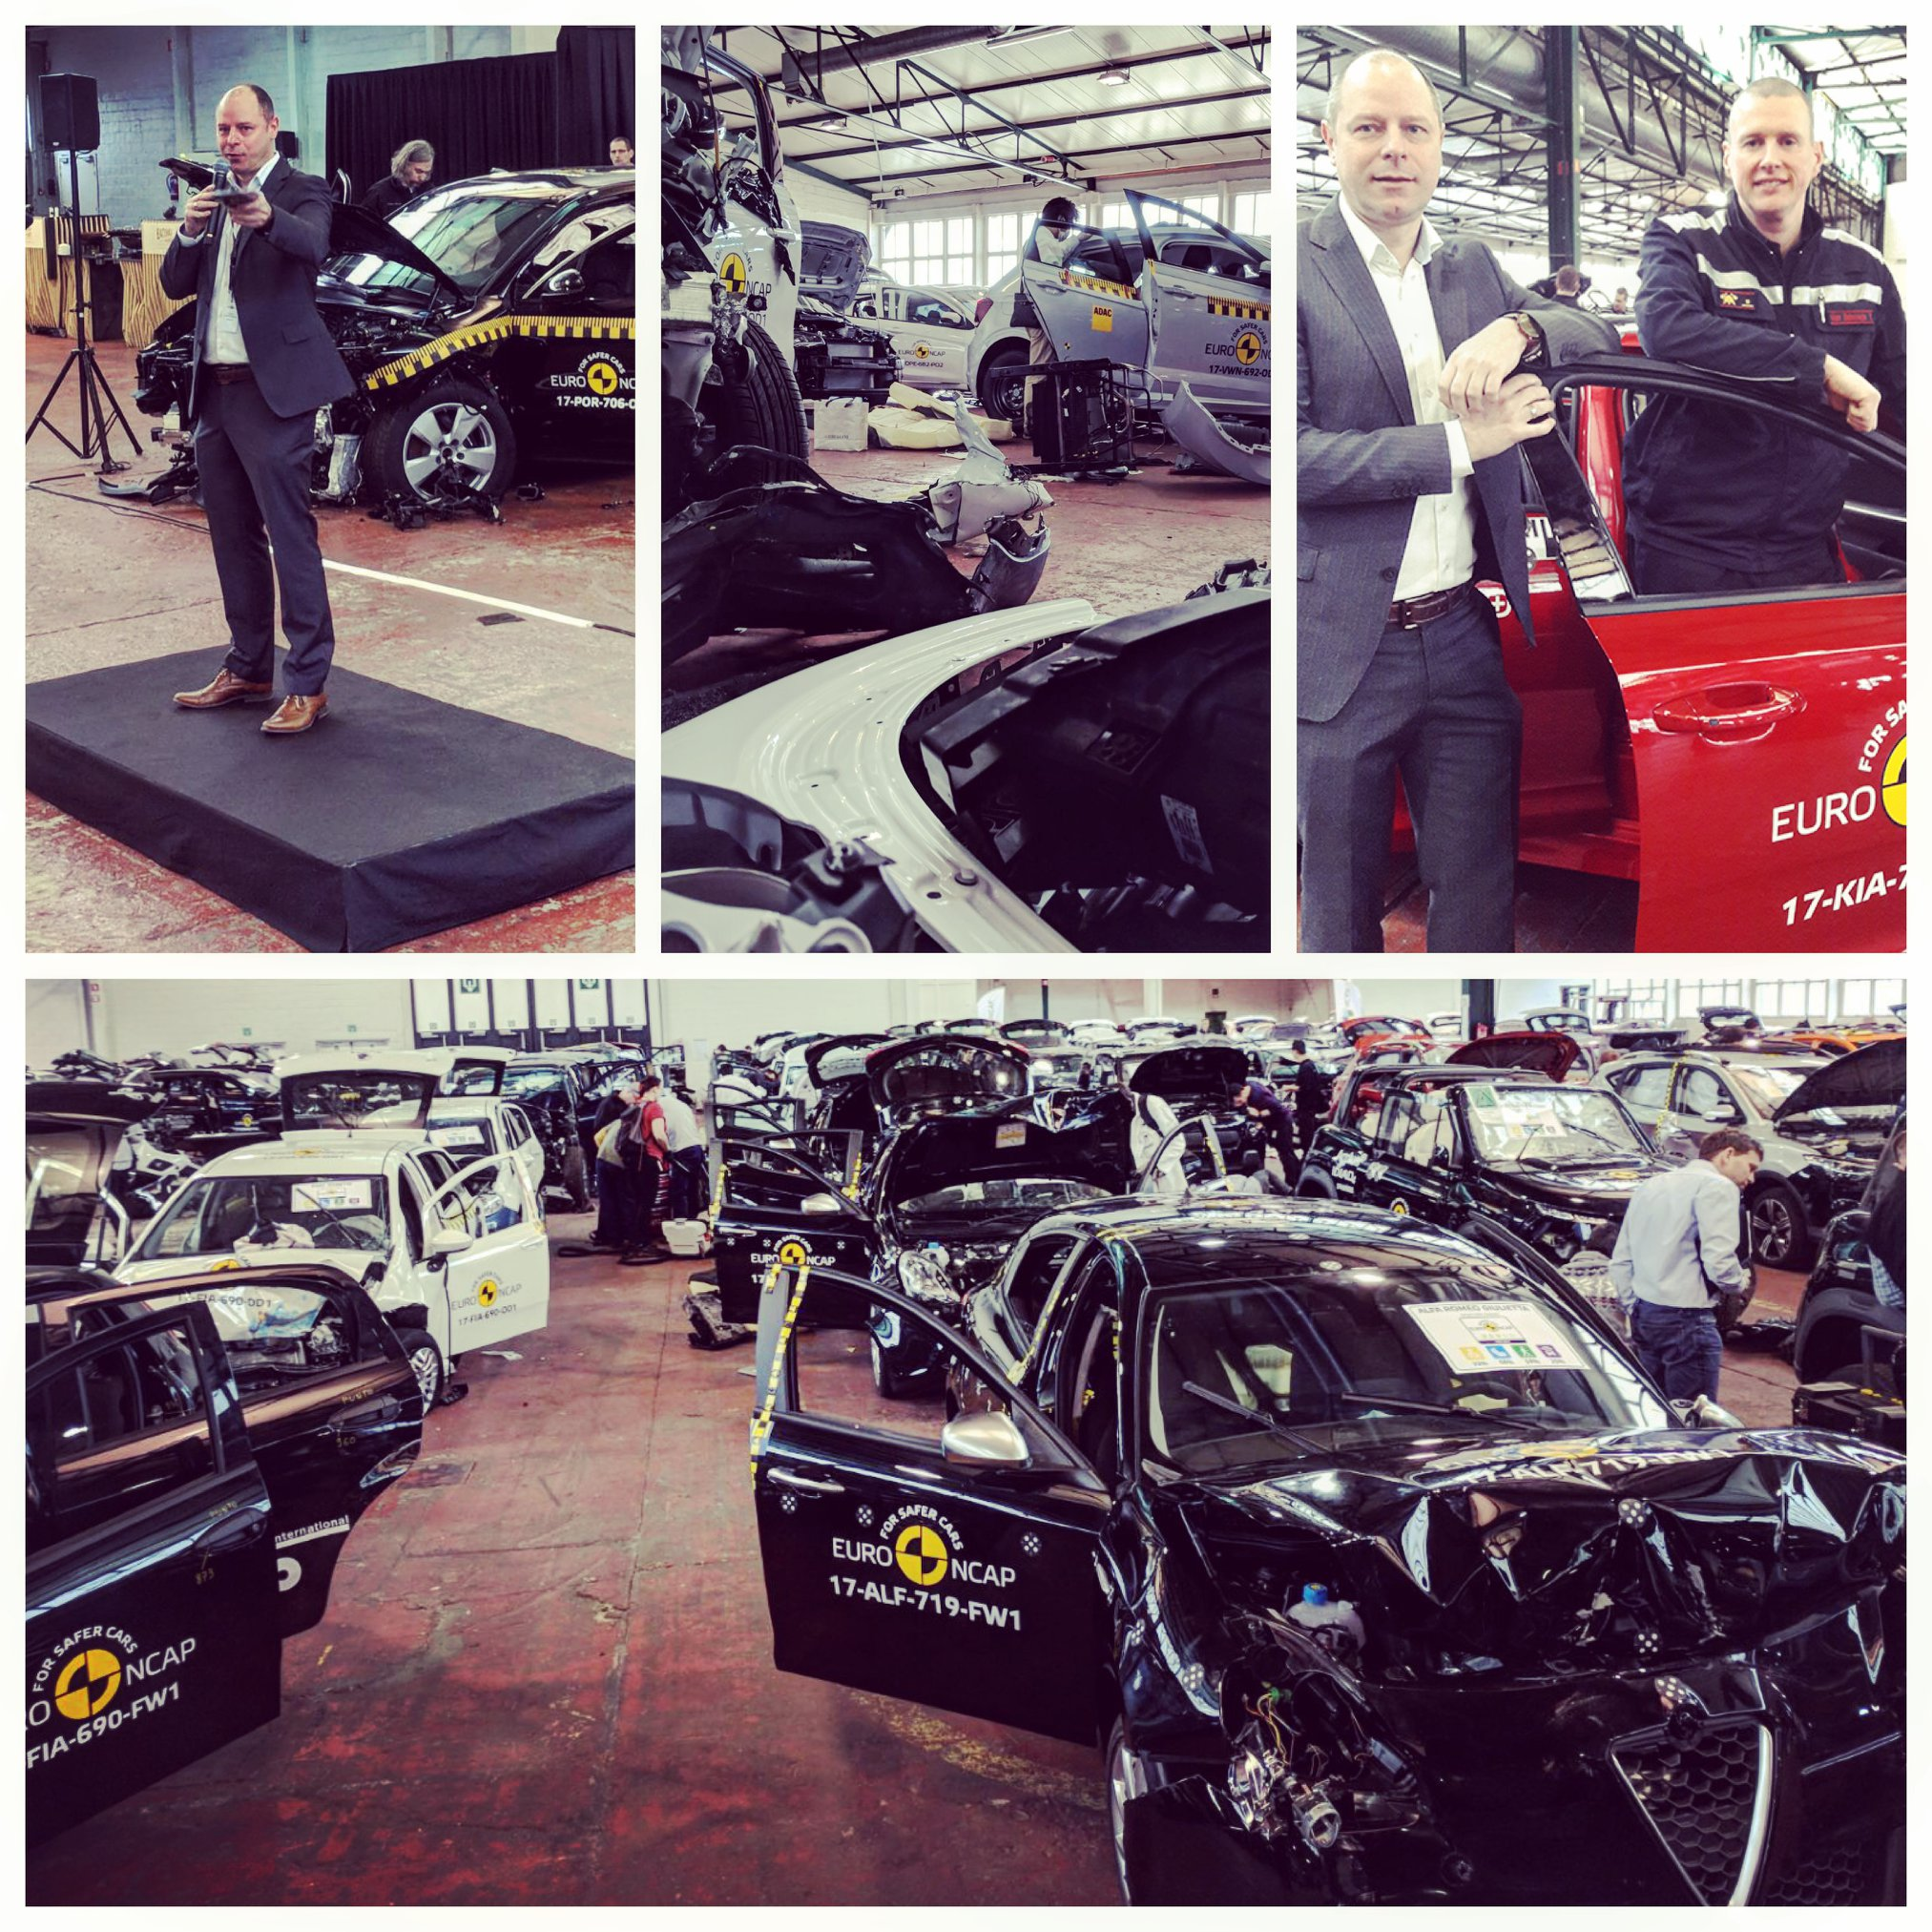 Donated car wrecks from Euro NCAP, The Official Site of The European New Car Assessment Programme